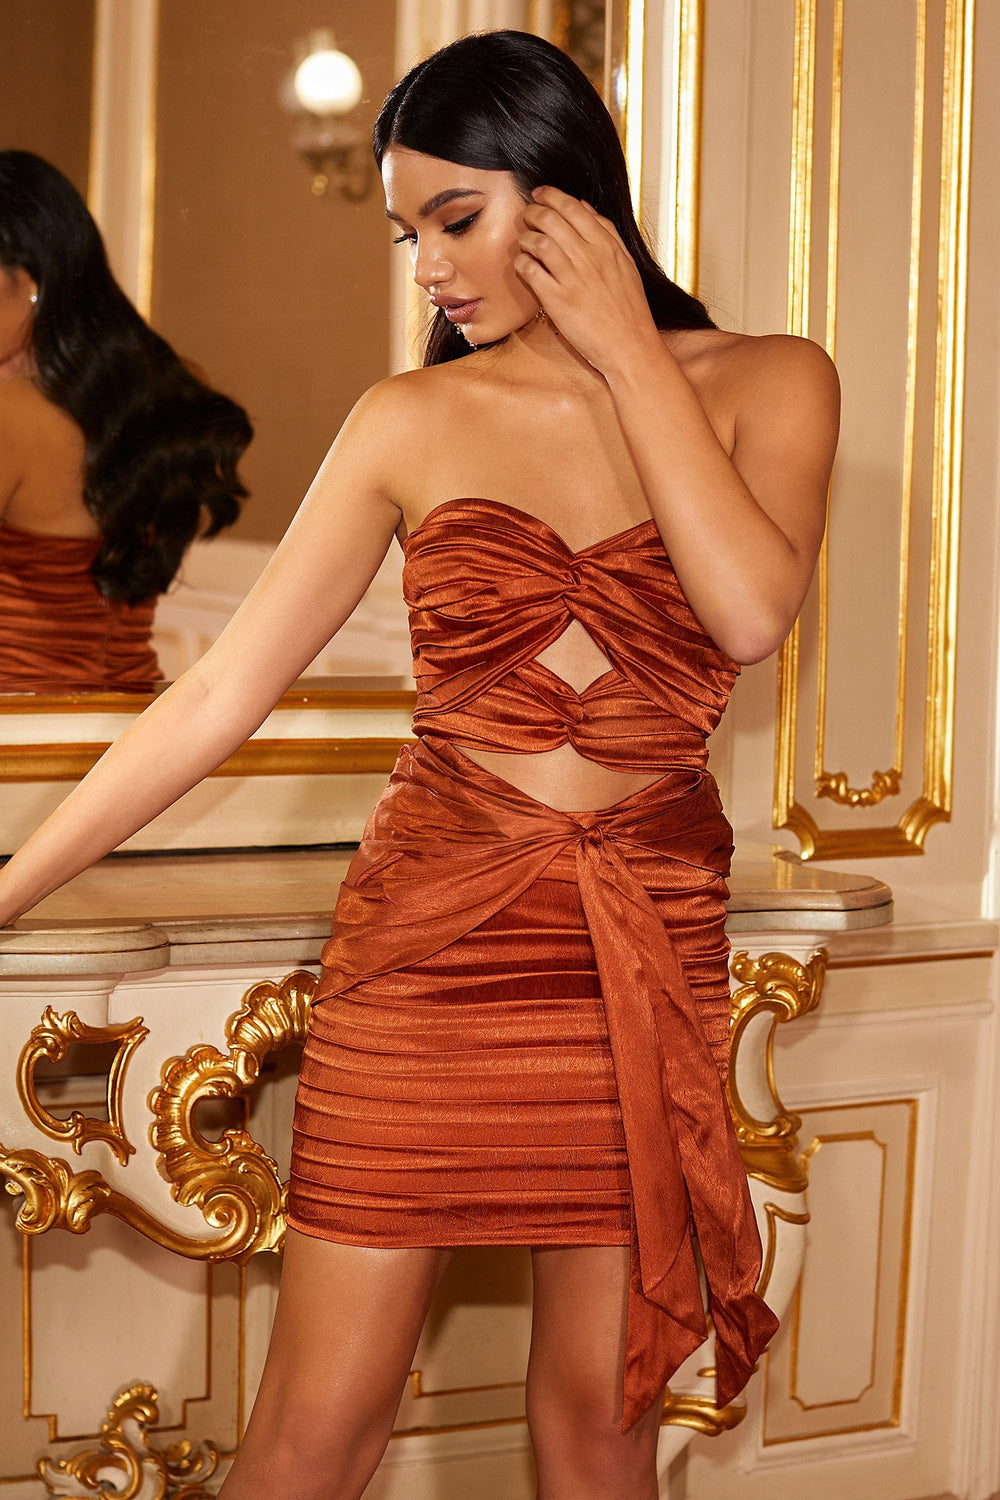 Lulia Dress - Strapless Rust Satin Mini Dress with Ruching & Cut-Outs